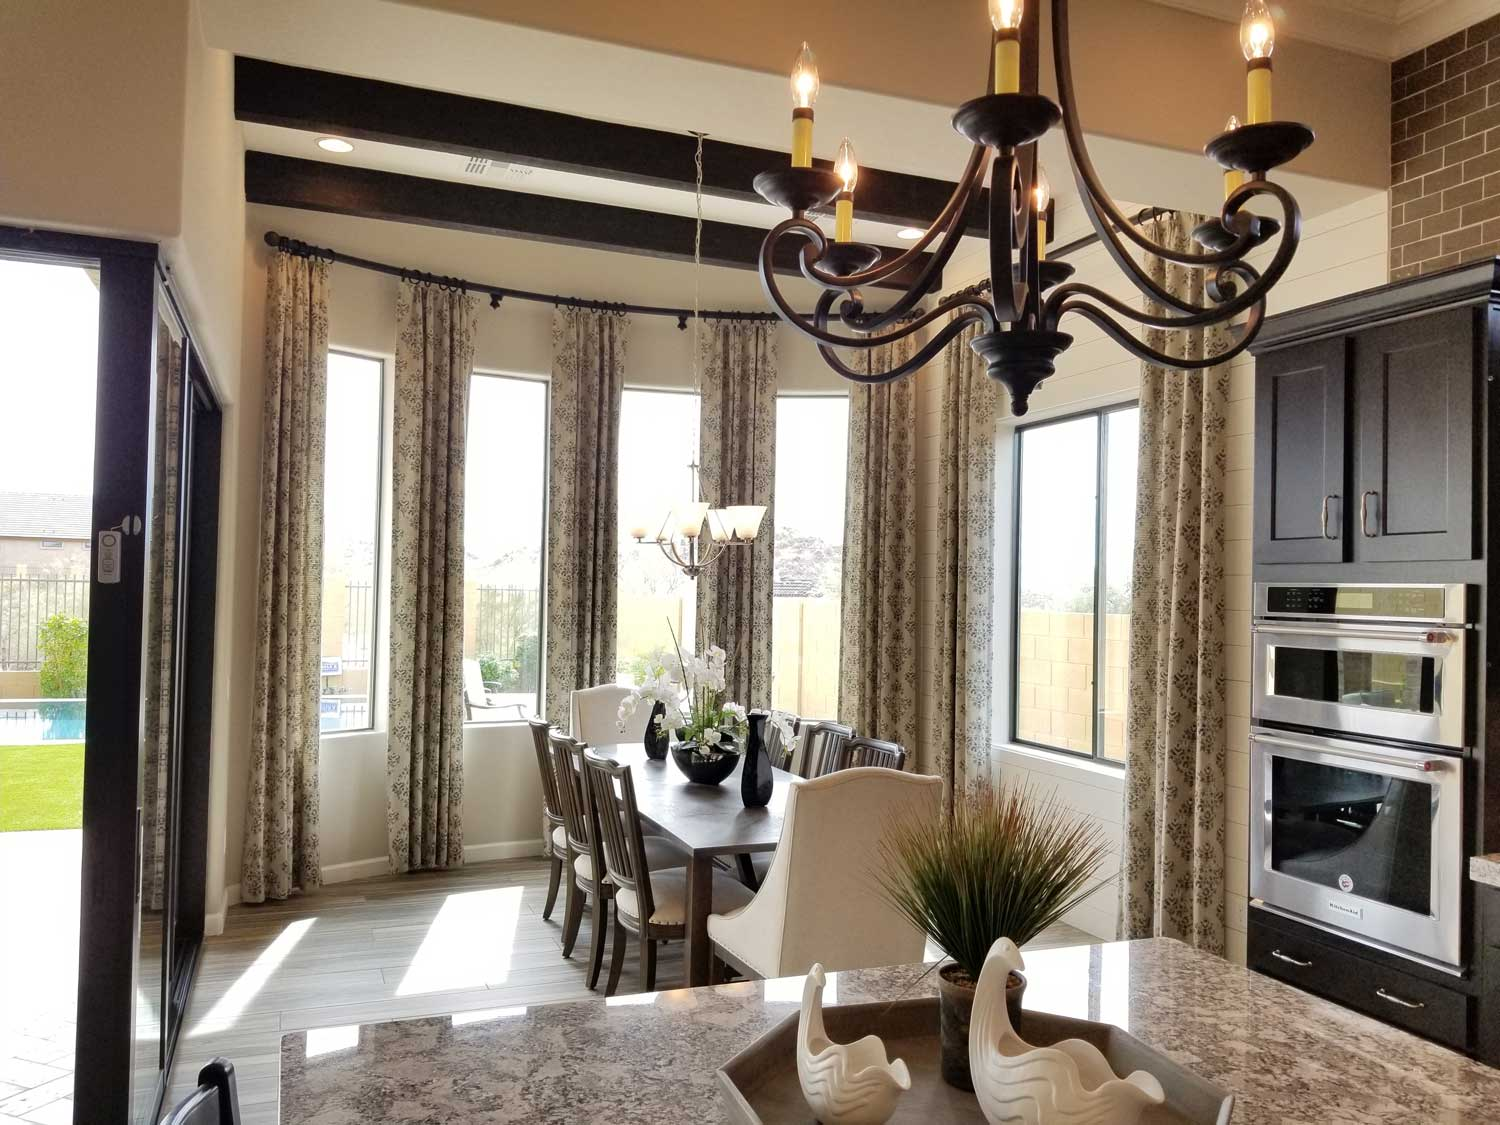 curved windows around a dining space